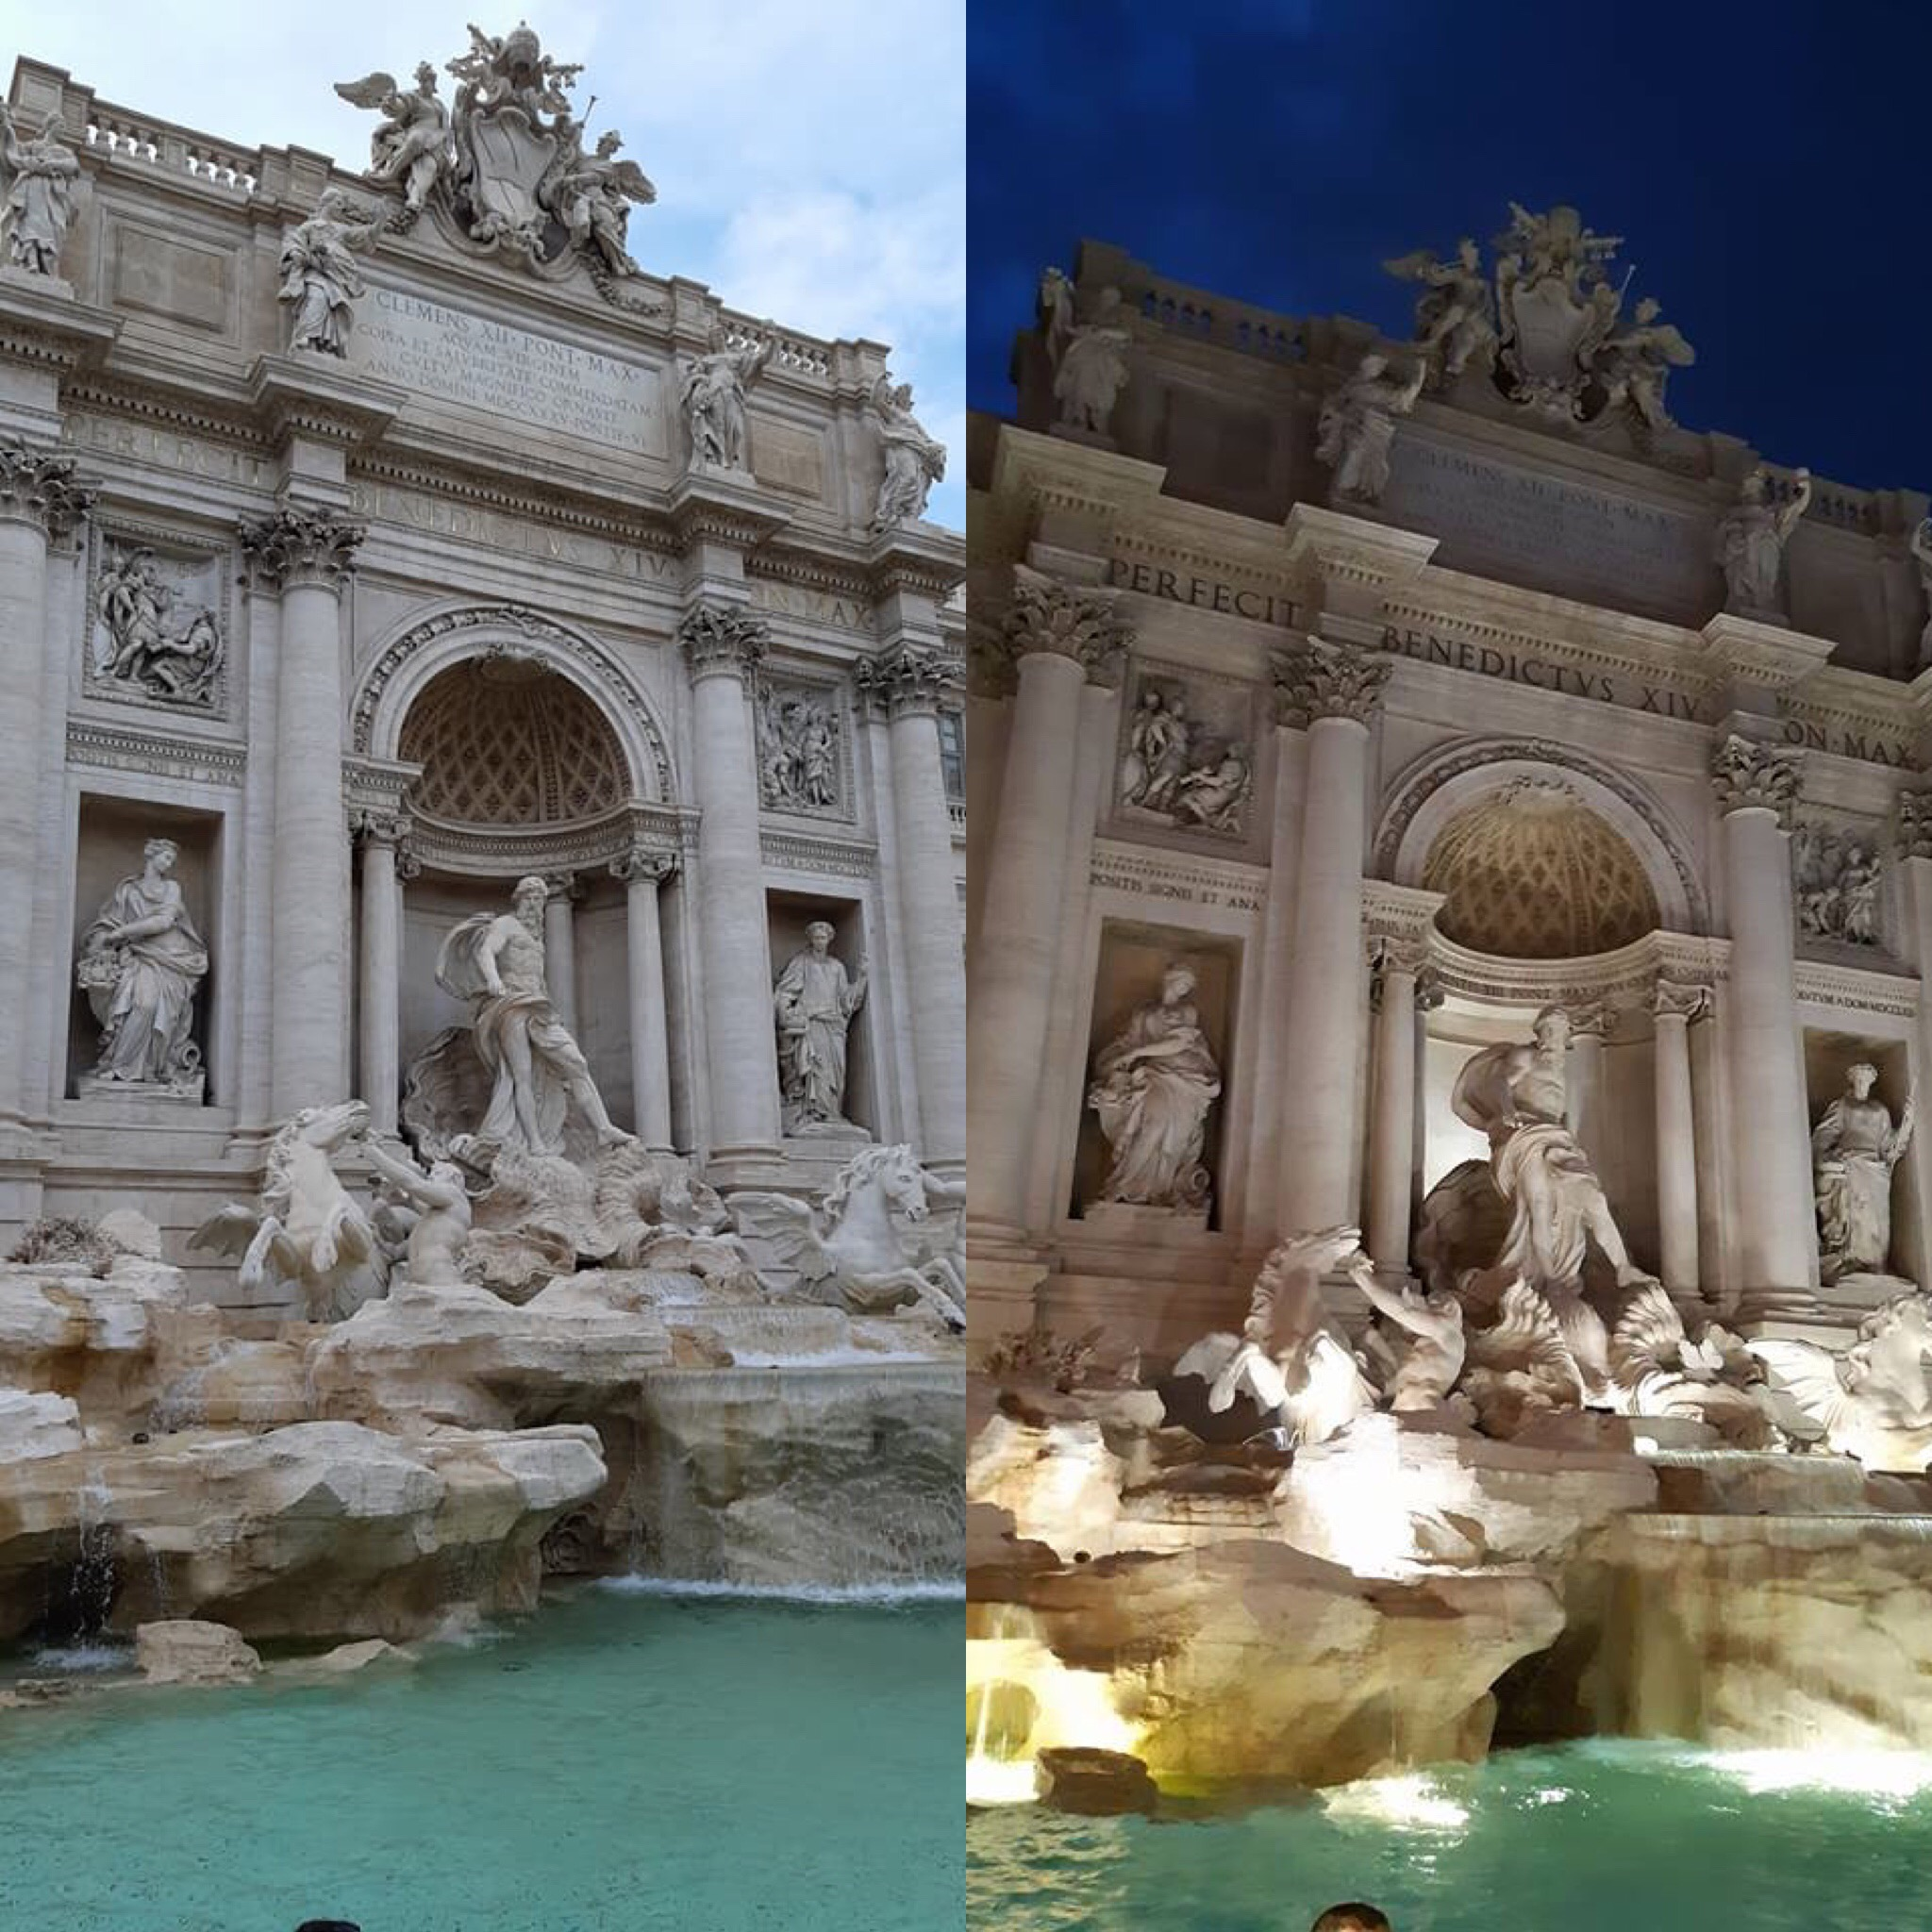 Best Romantic Restaurants In Rome Italy: Rome, The Romantic, The Not So Romantic, And The Ugly